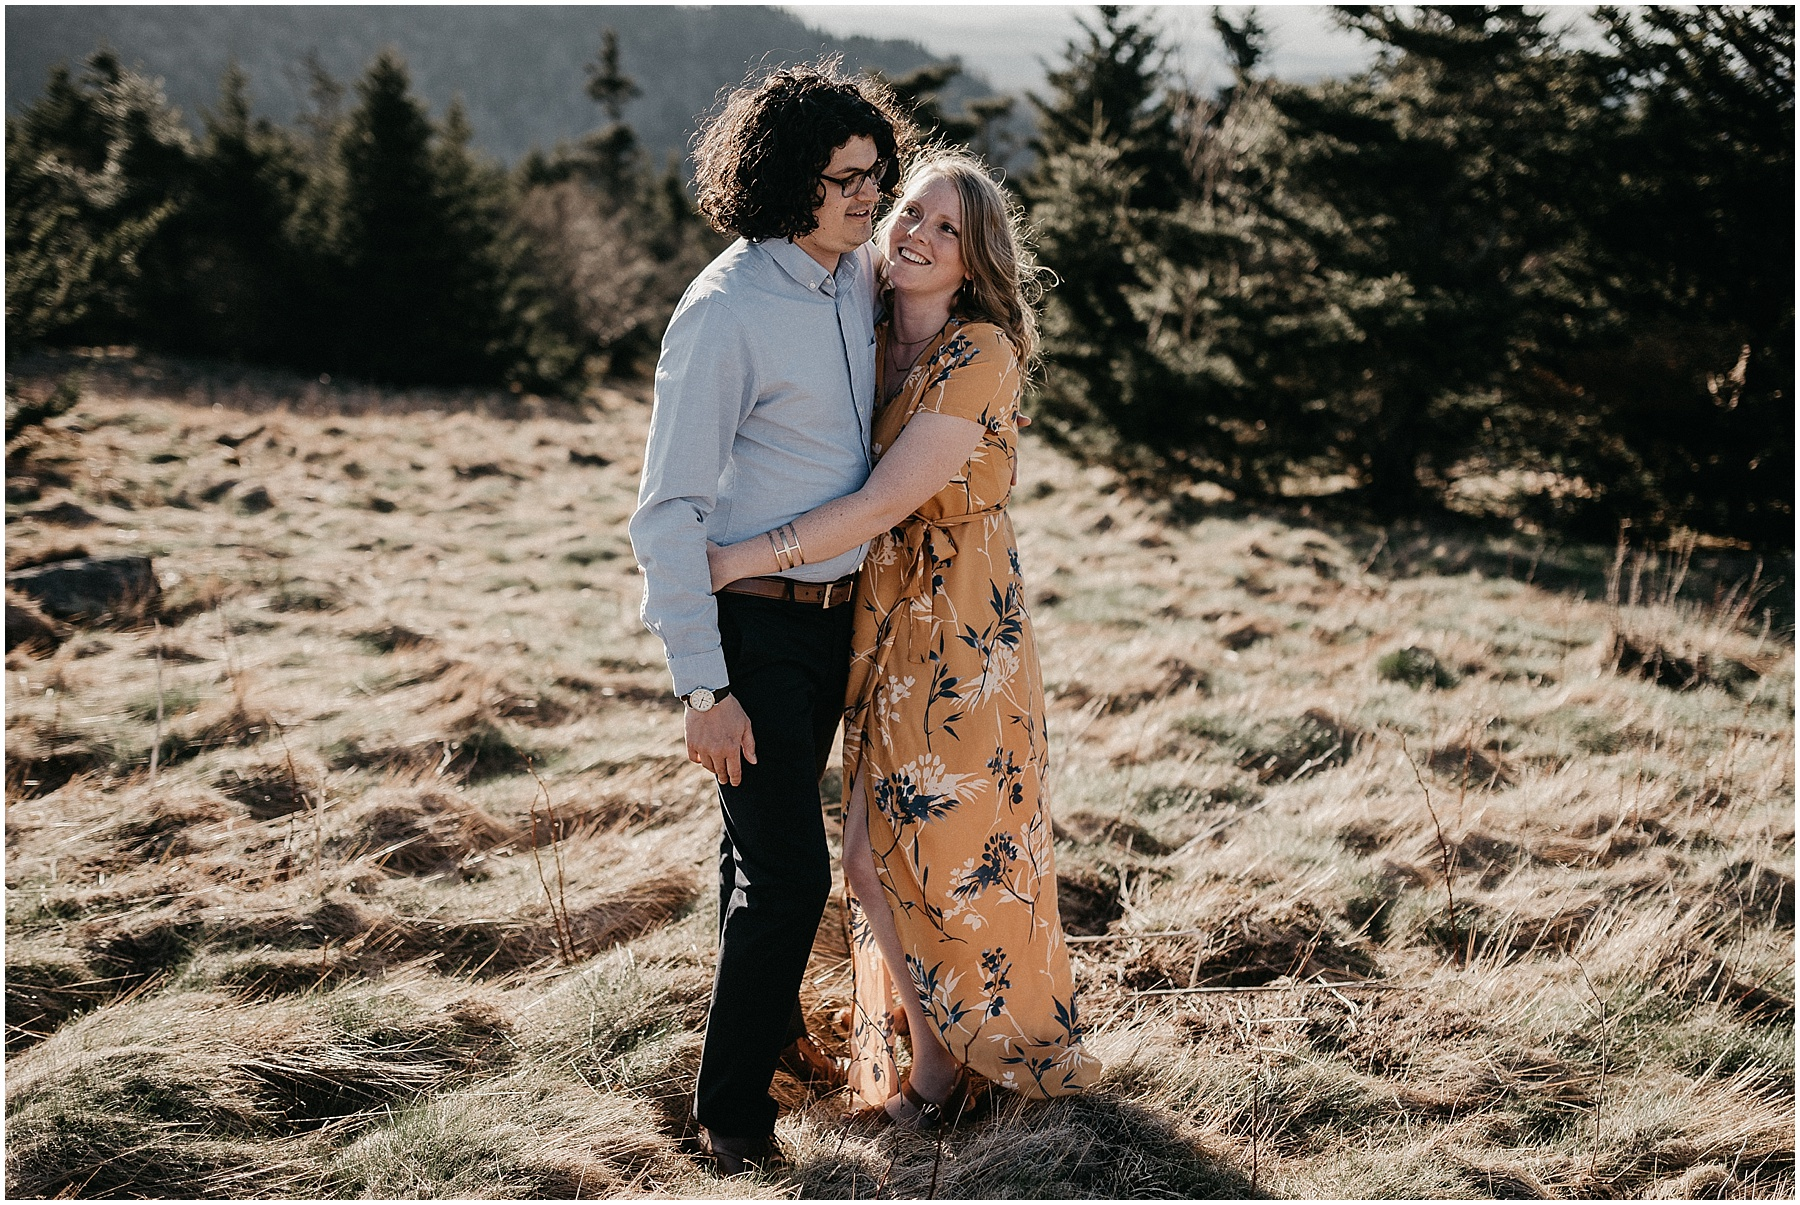 Boone_Engagement_Photographer_09.jpg